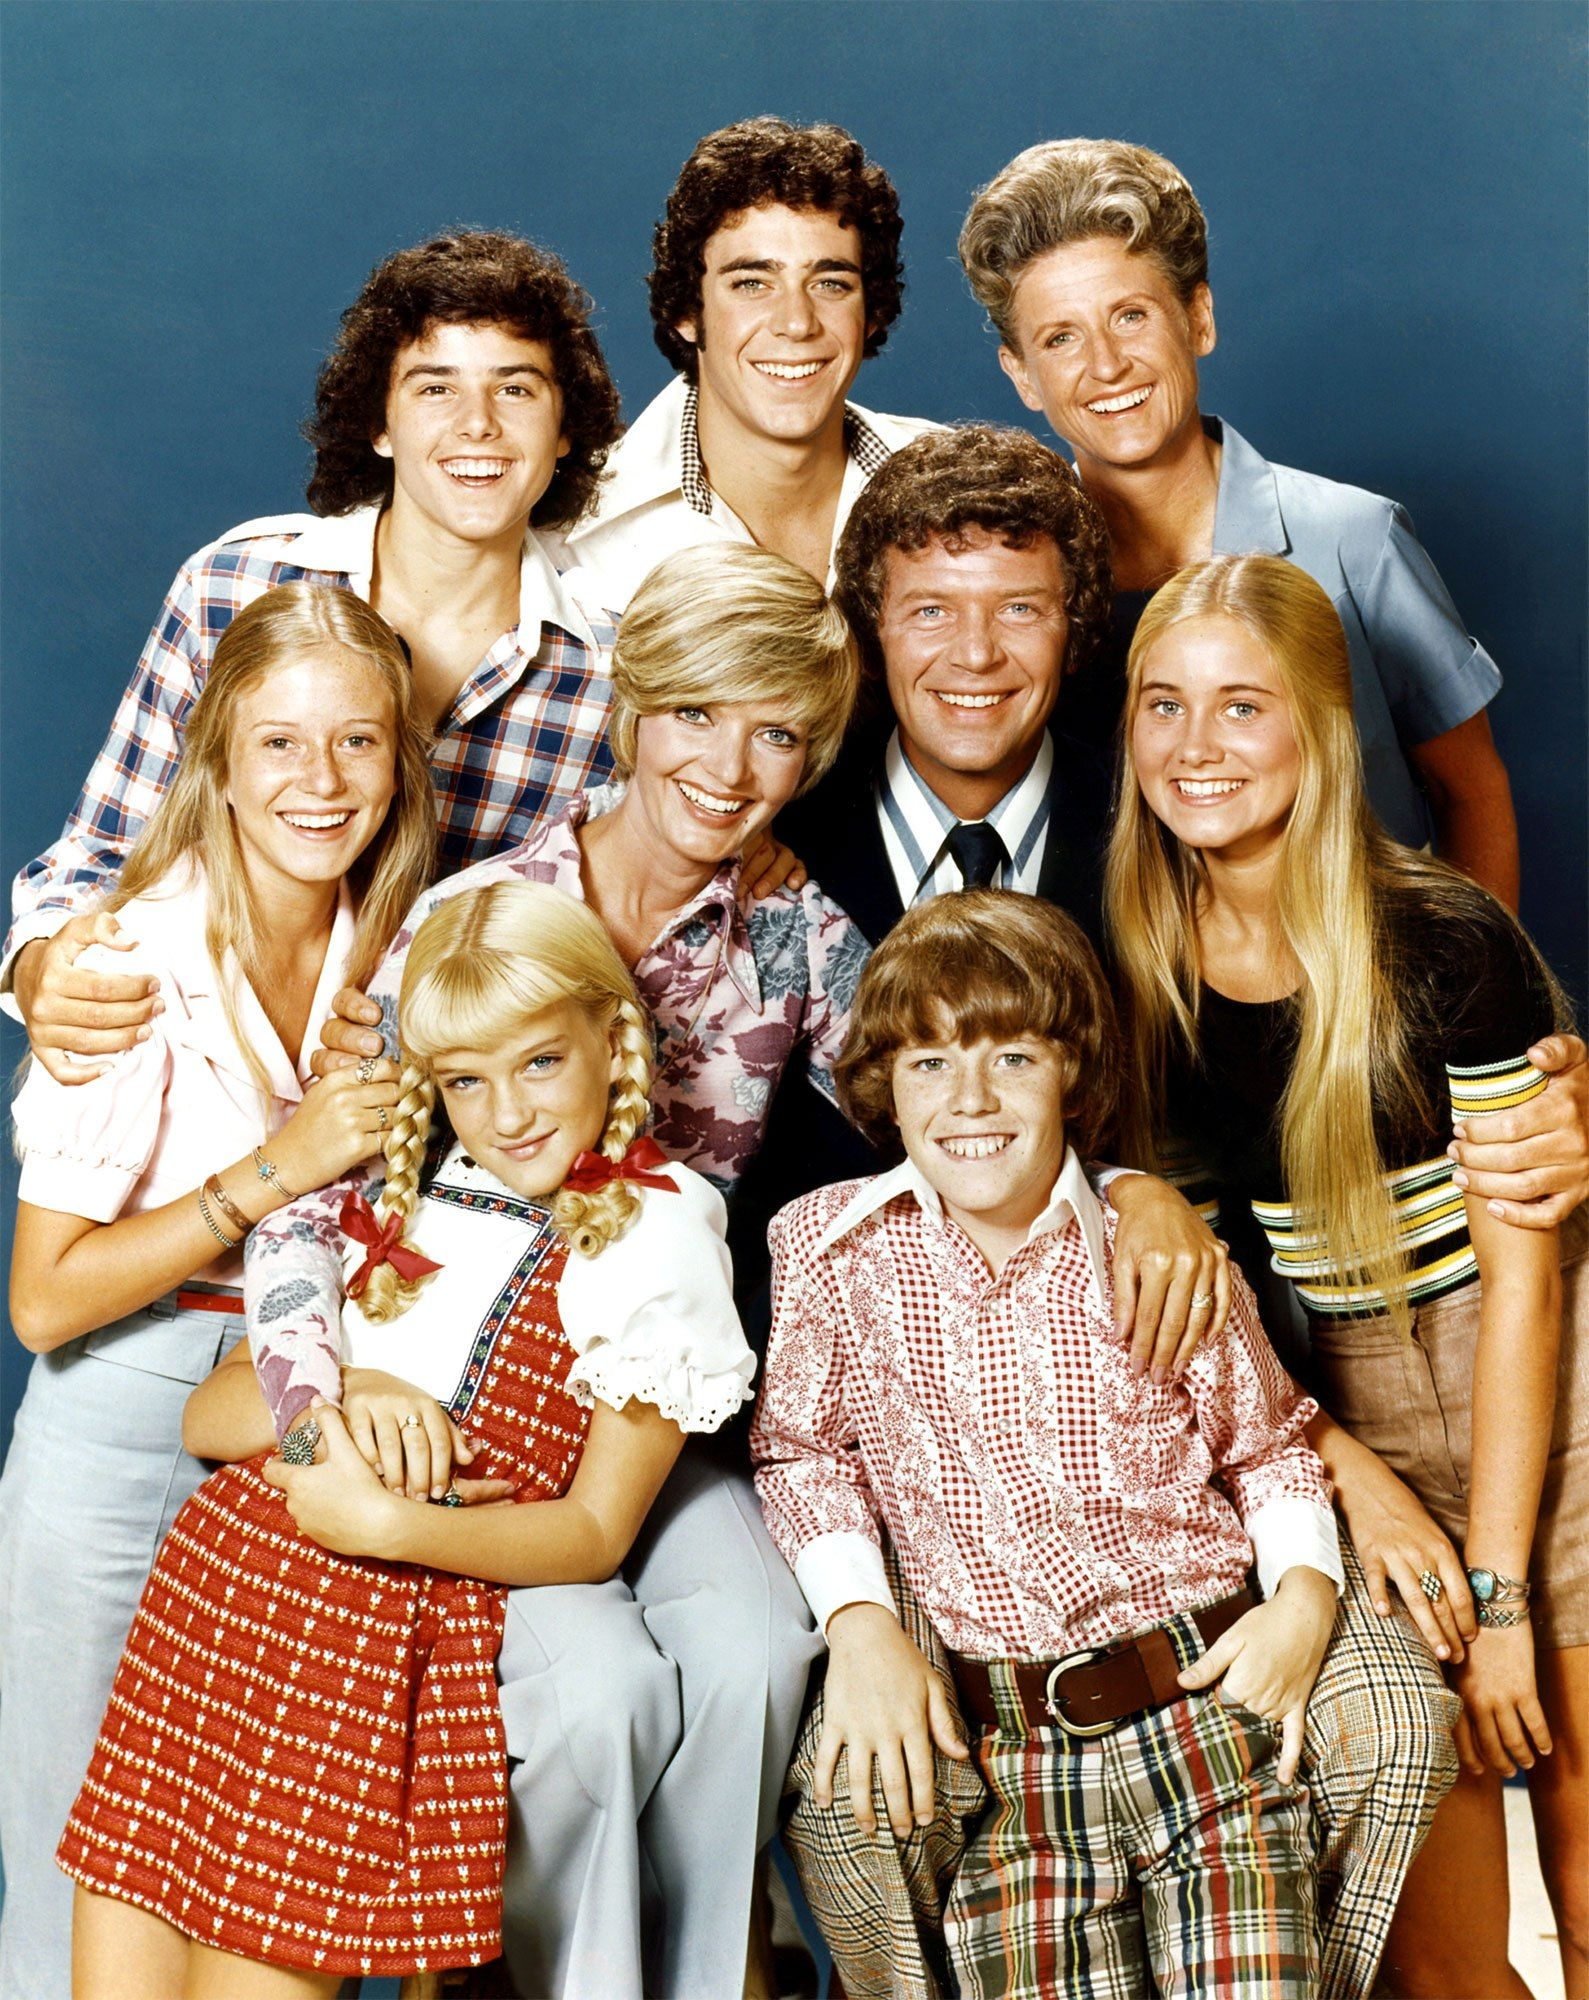 WATCH: See the Emotional Moment All Six Brady Bunch Kids Reunite at Their Iconic TV House After 15 Years #bradybunchhouse